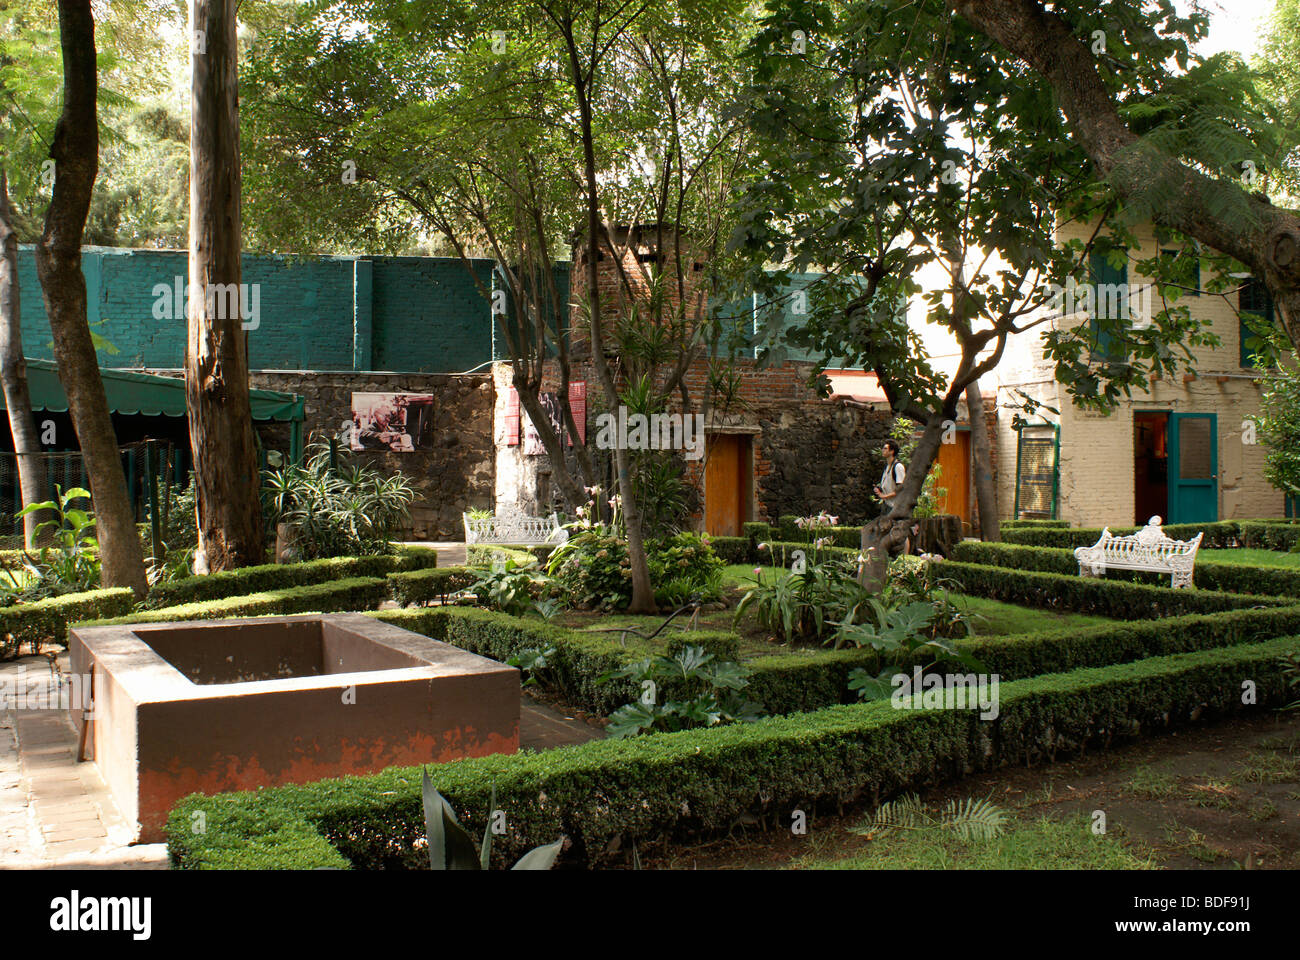 Interior Garden Of The Museo Casa De Leon Trotsky Or Leon Trotsky House  Museum In Coyoacan, Mexico City